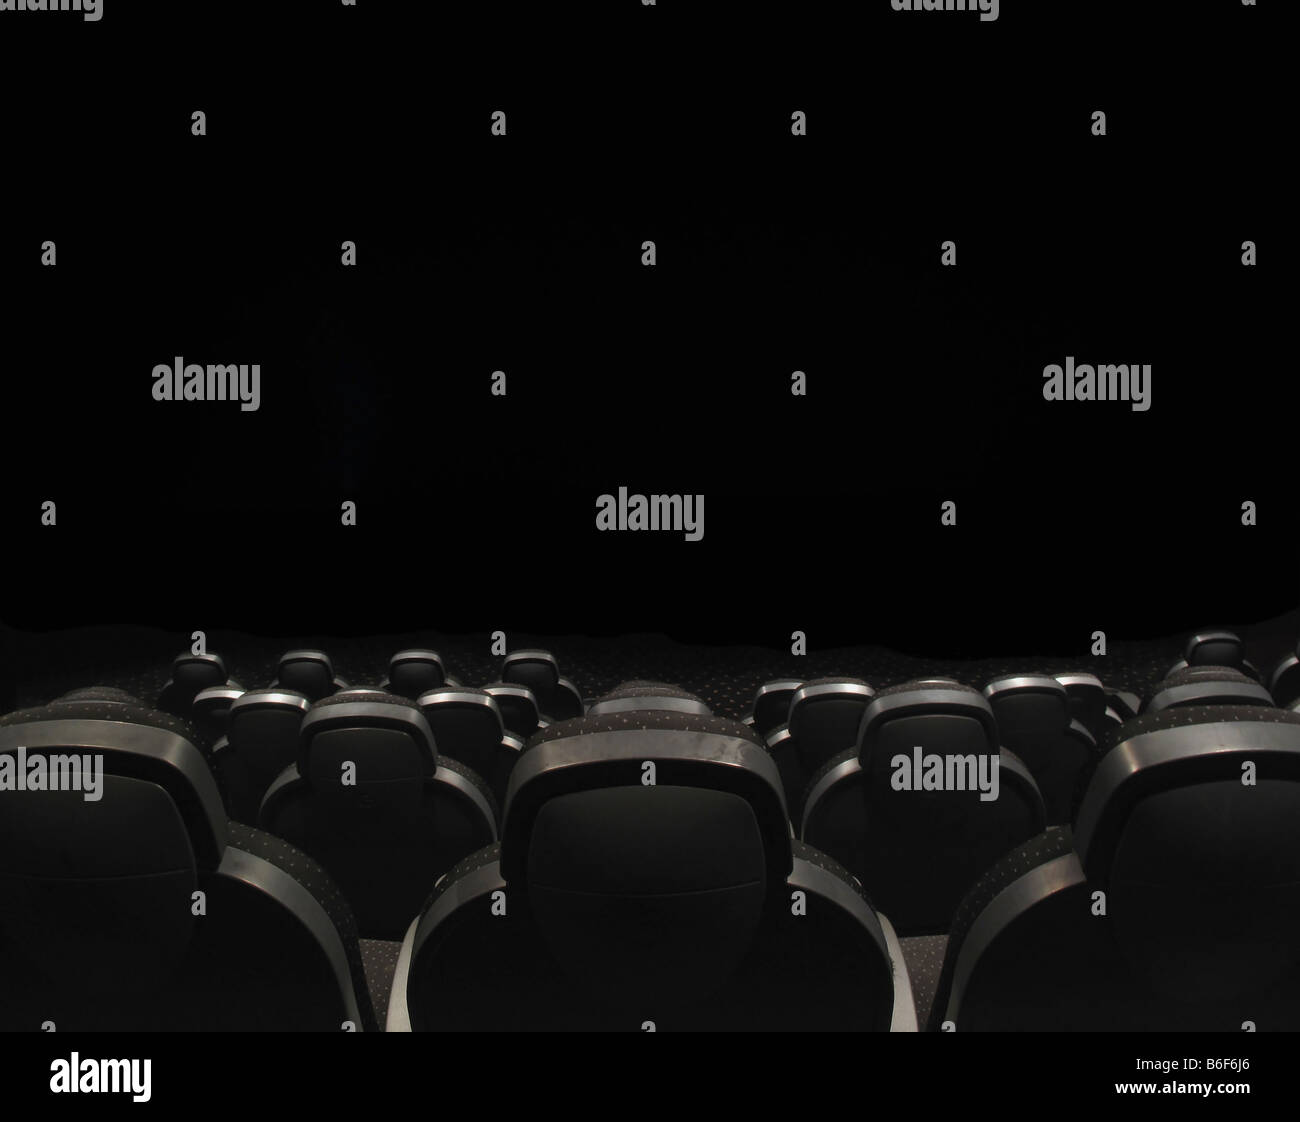 Seats in a cinema theatre or congress hall - Stock Image